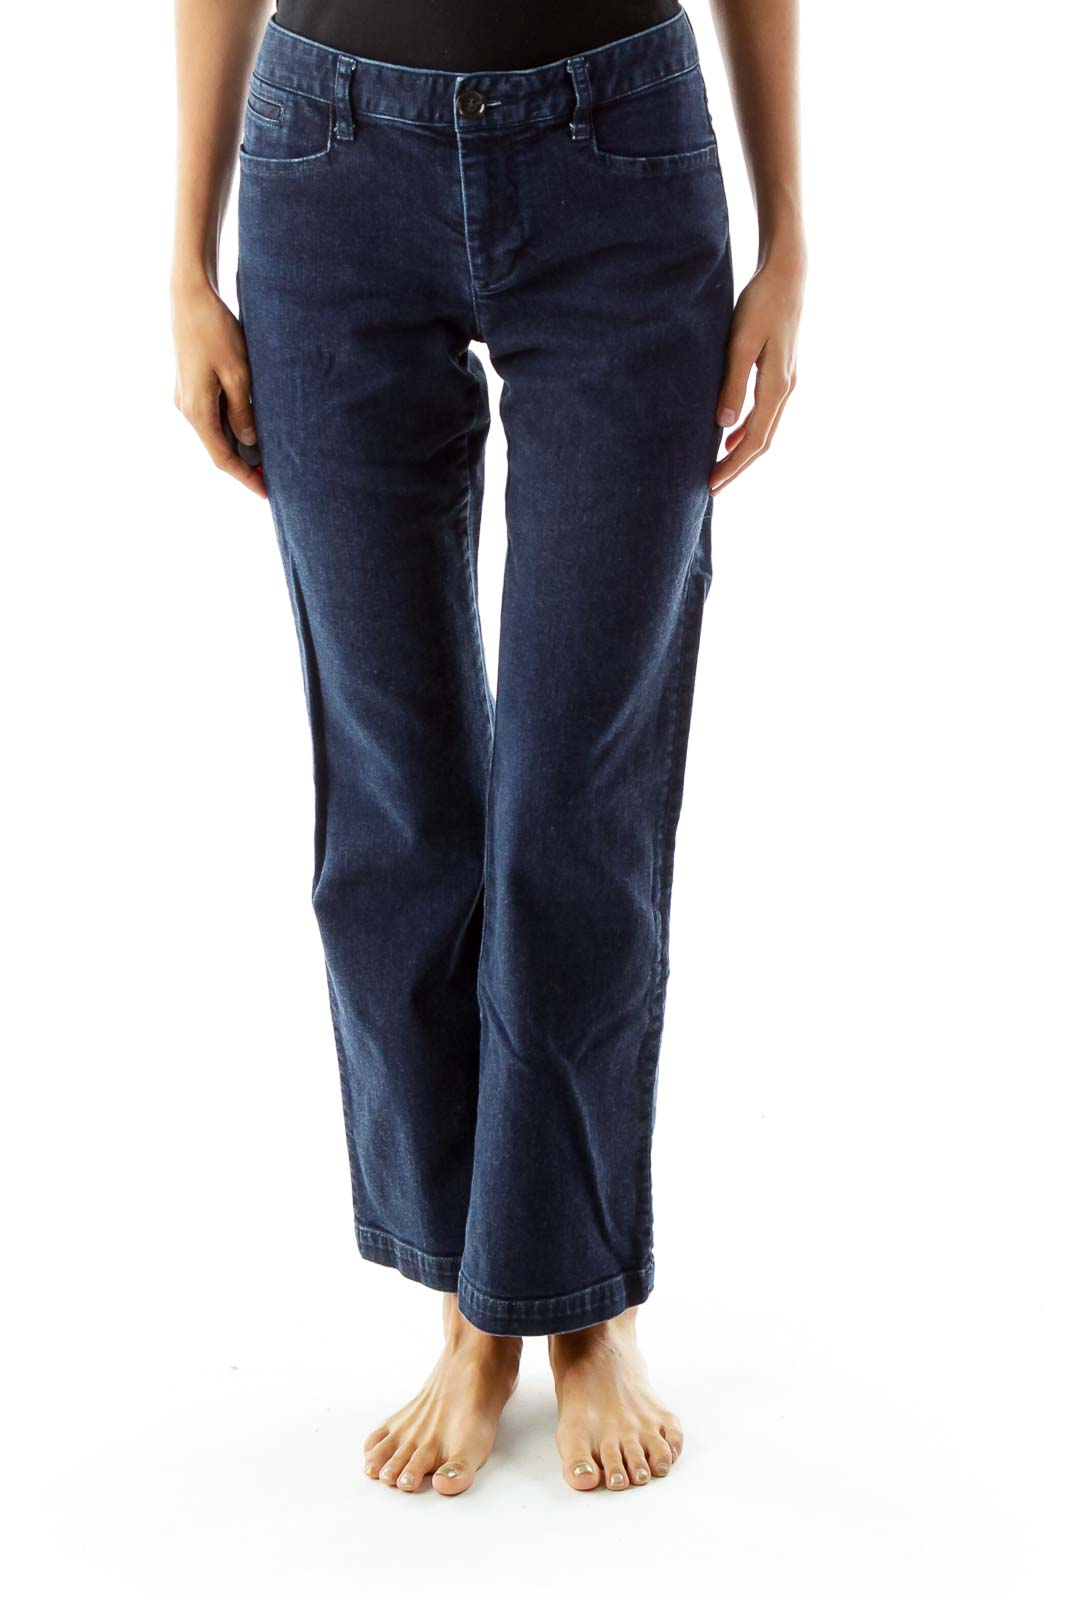 Blue Denim Wide Leg Jeans